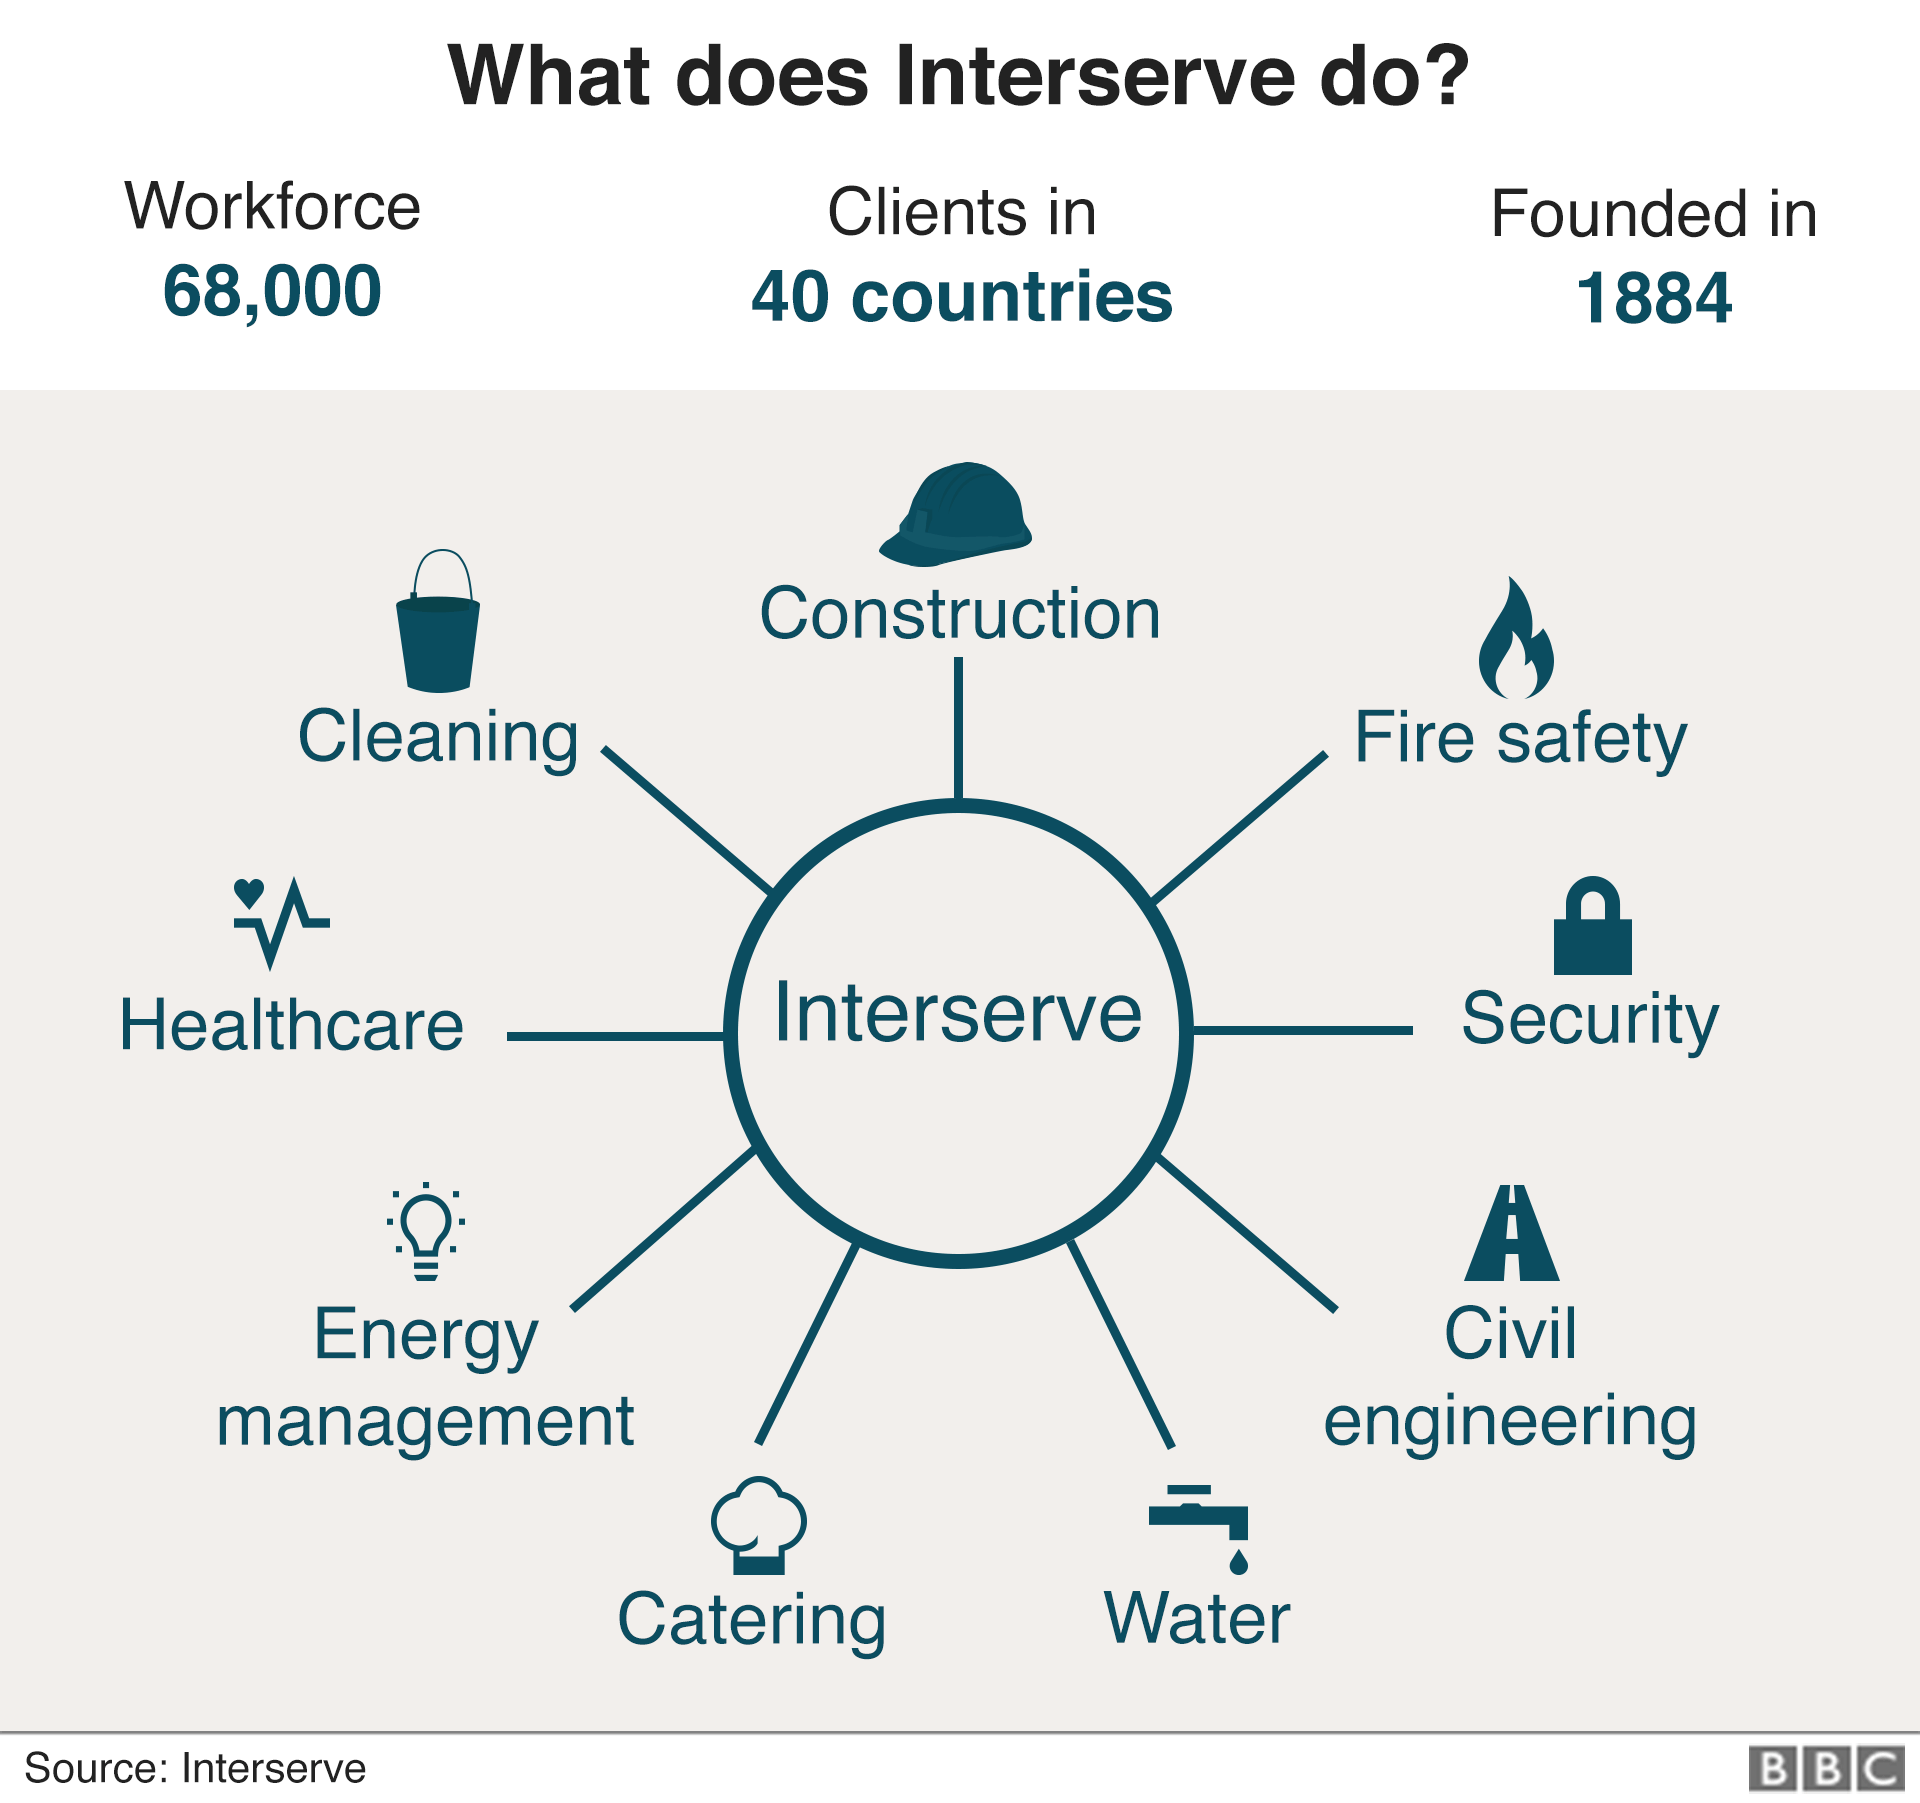 What does Interserve do?